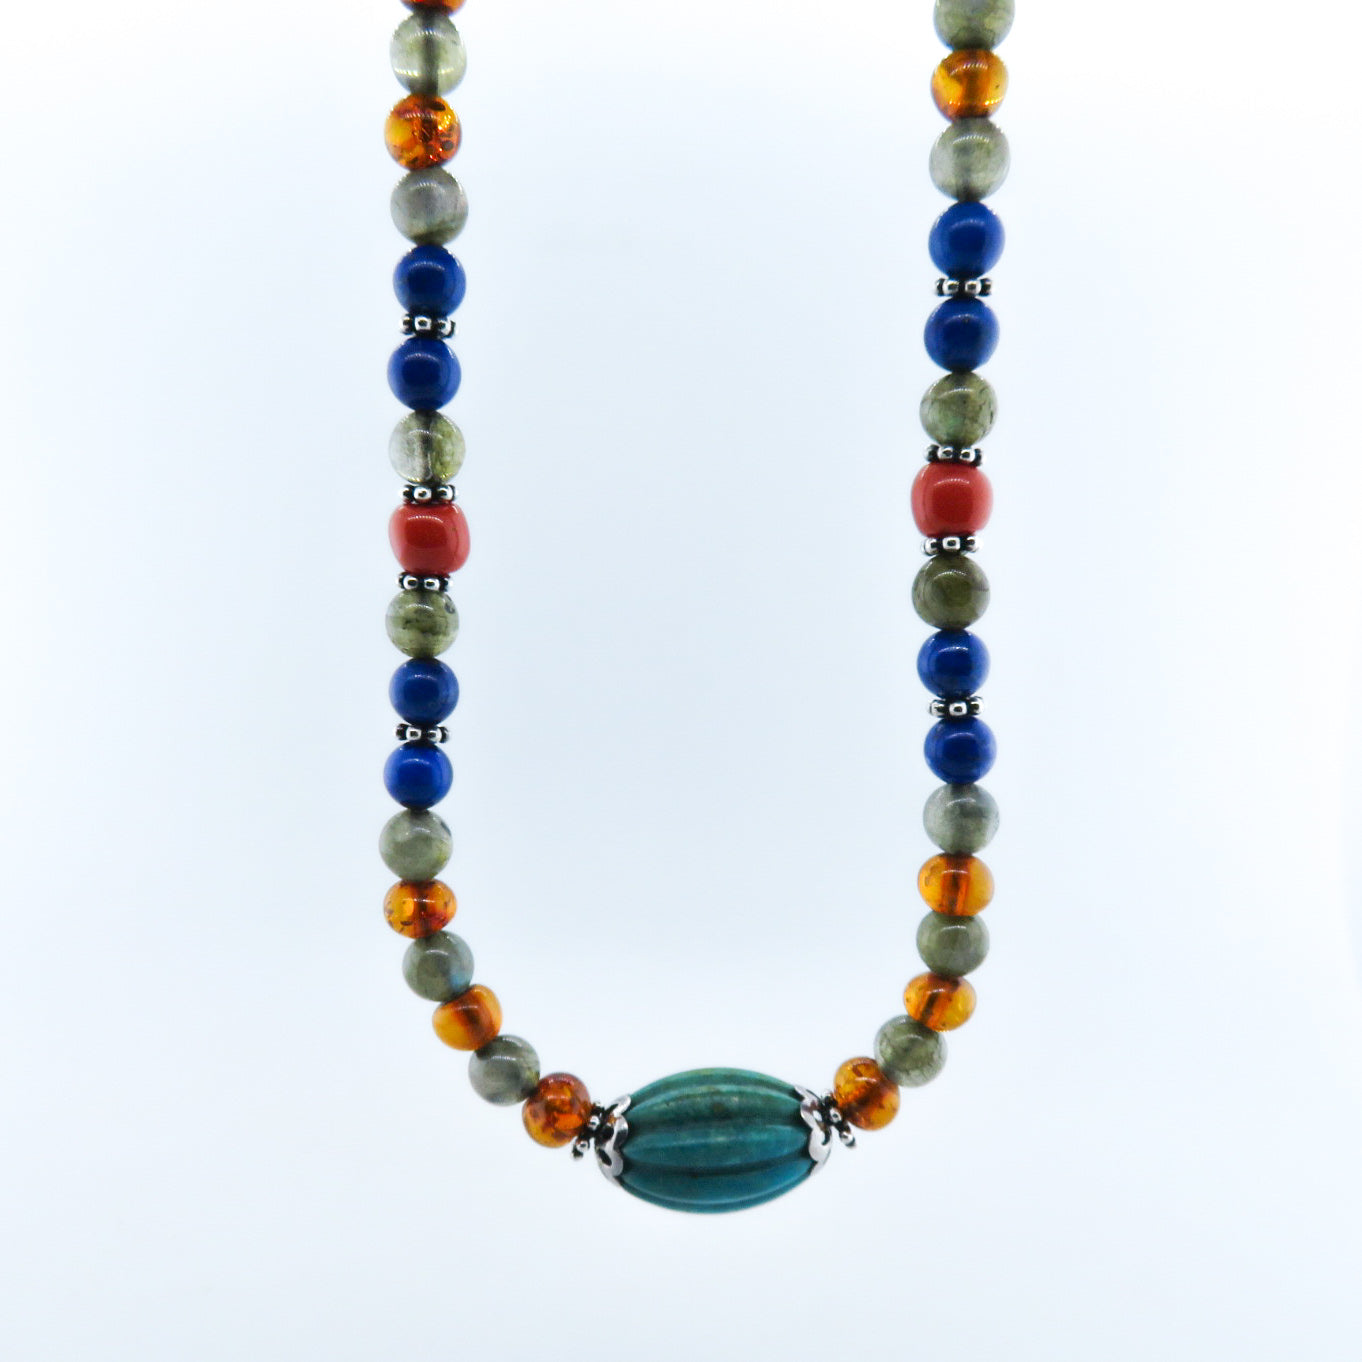 Mixed Stone Beads (Turquoise, Amber, Labradorite, Lapis Lazuli, Italian Red Coral) with Silver Beads